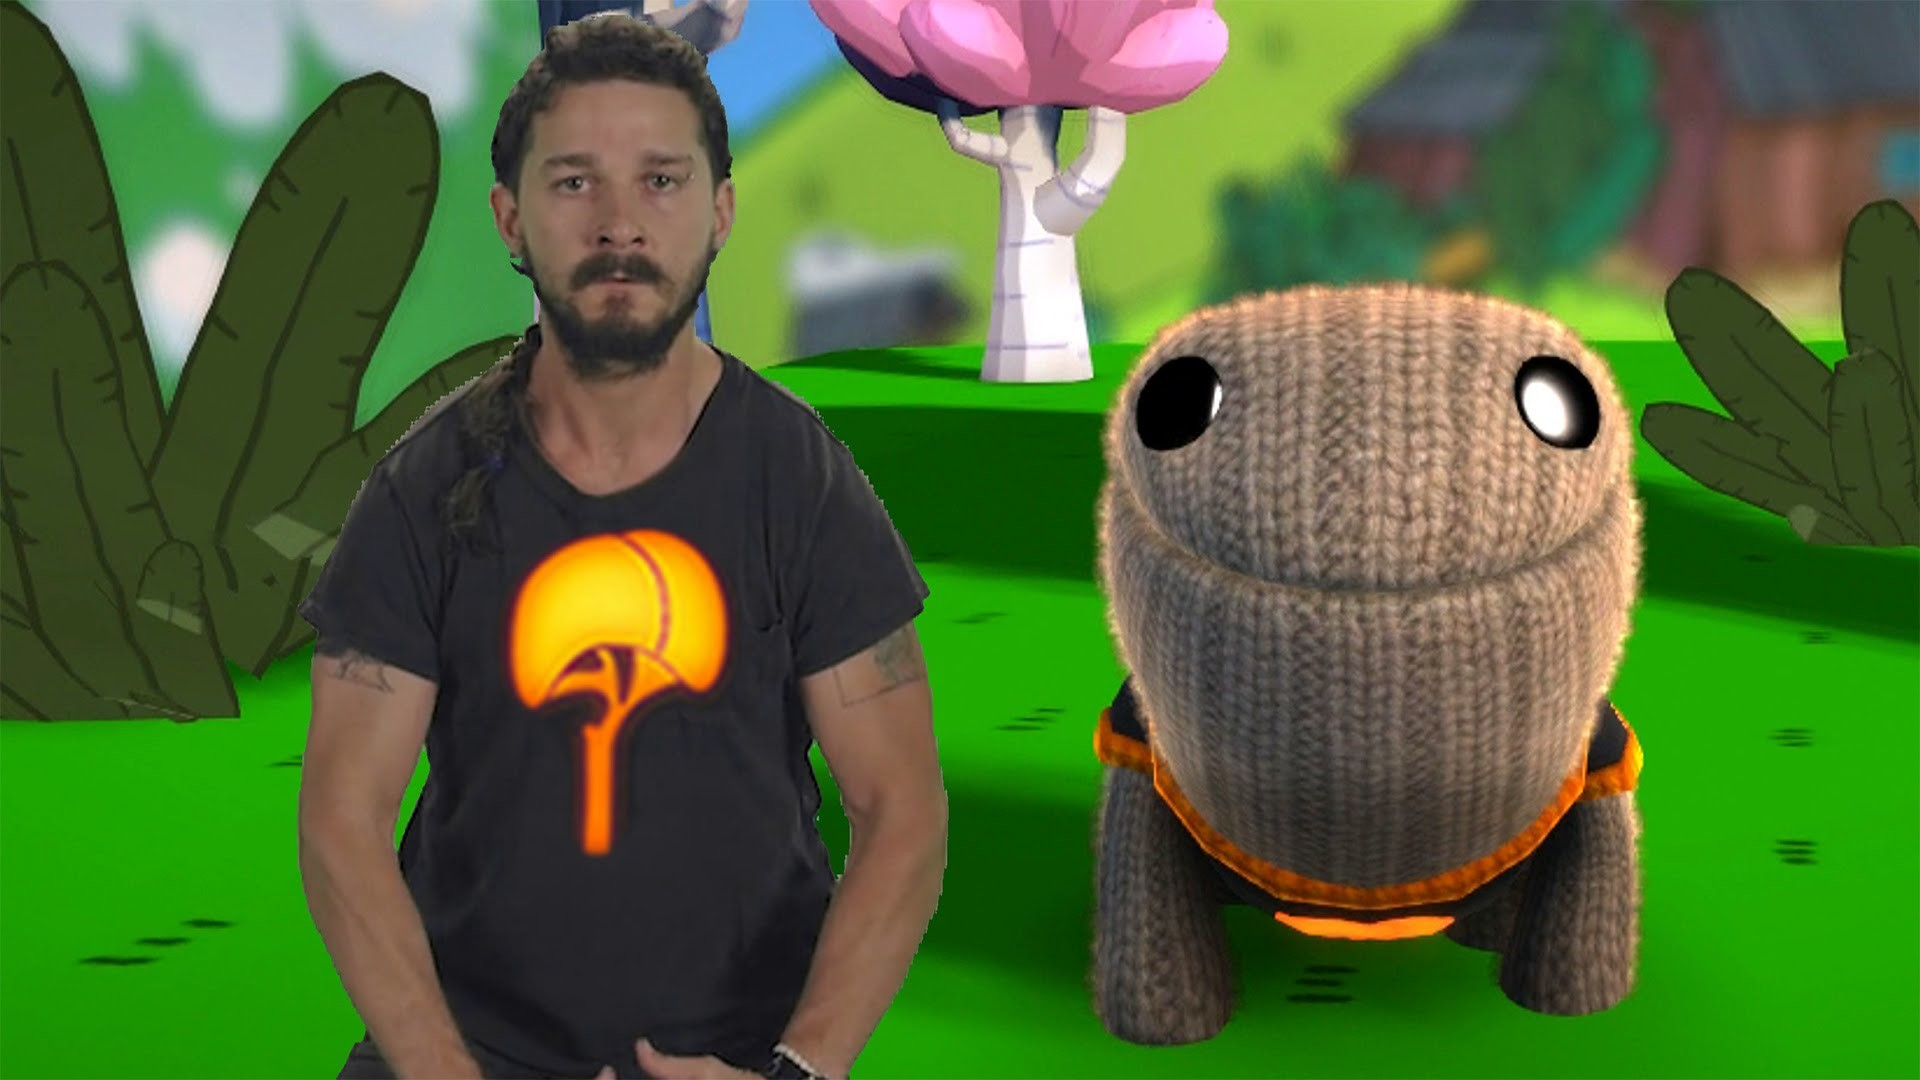 Just Do It – Shia LaBeouf Gives Motivational Speech To OddSock –  LittleBigPlanet 3 Animation – YouTube